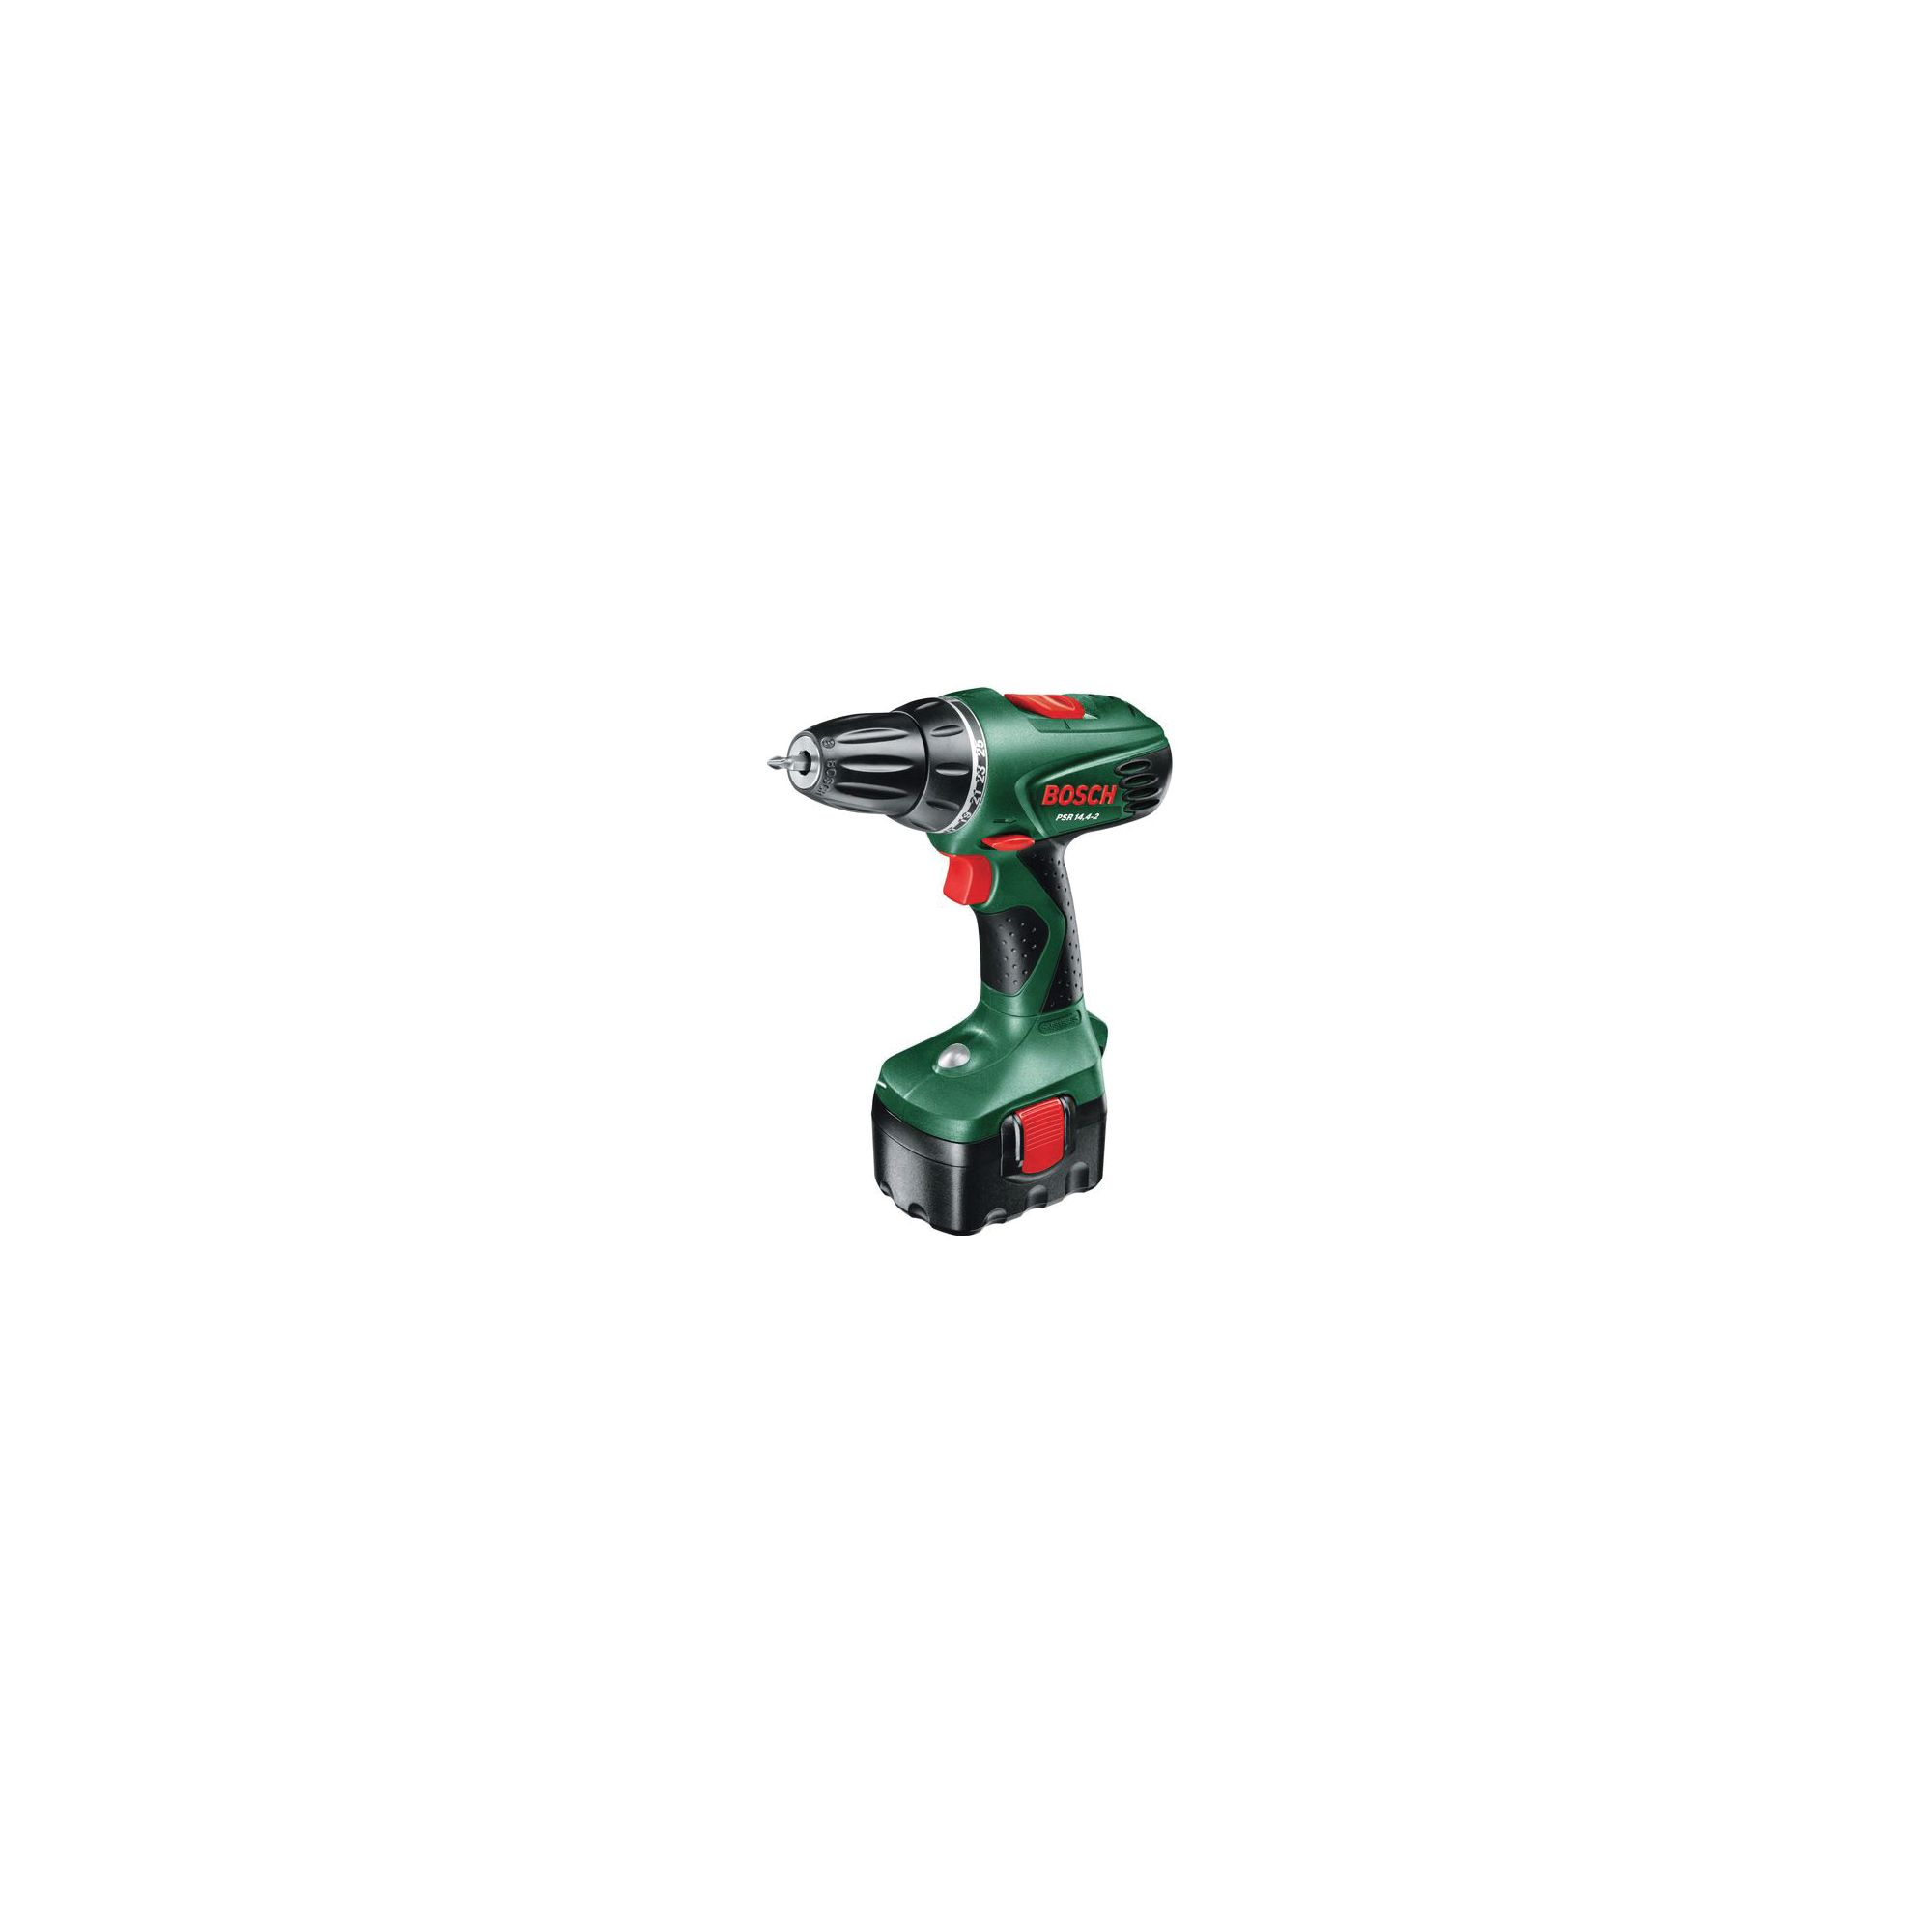 bosch psr 14 4 cordless 14 4 volt drill driver 2 x nicd battery lowest prices on power drills. Black Bedroom Furniture Sets. Home Design Ideas